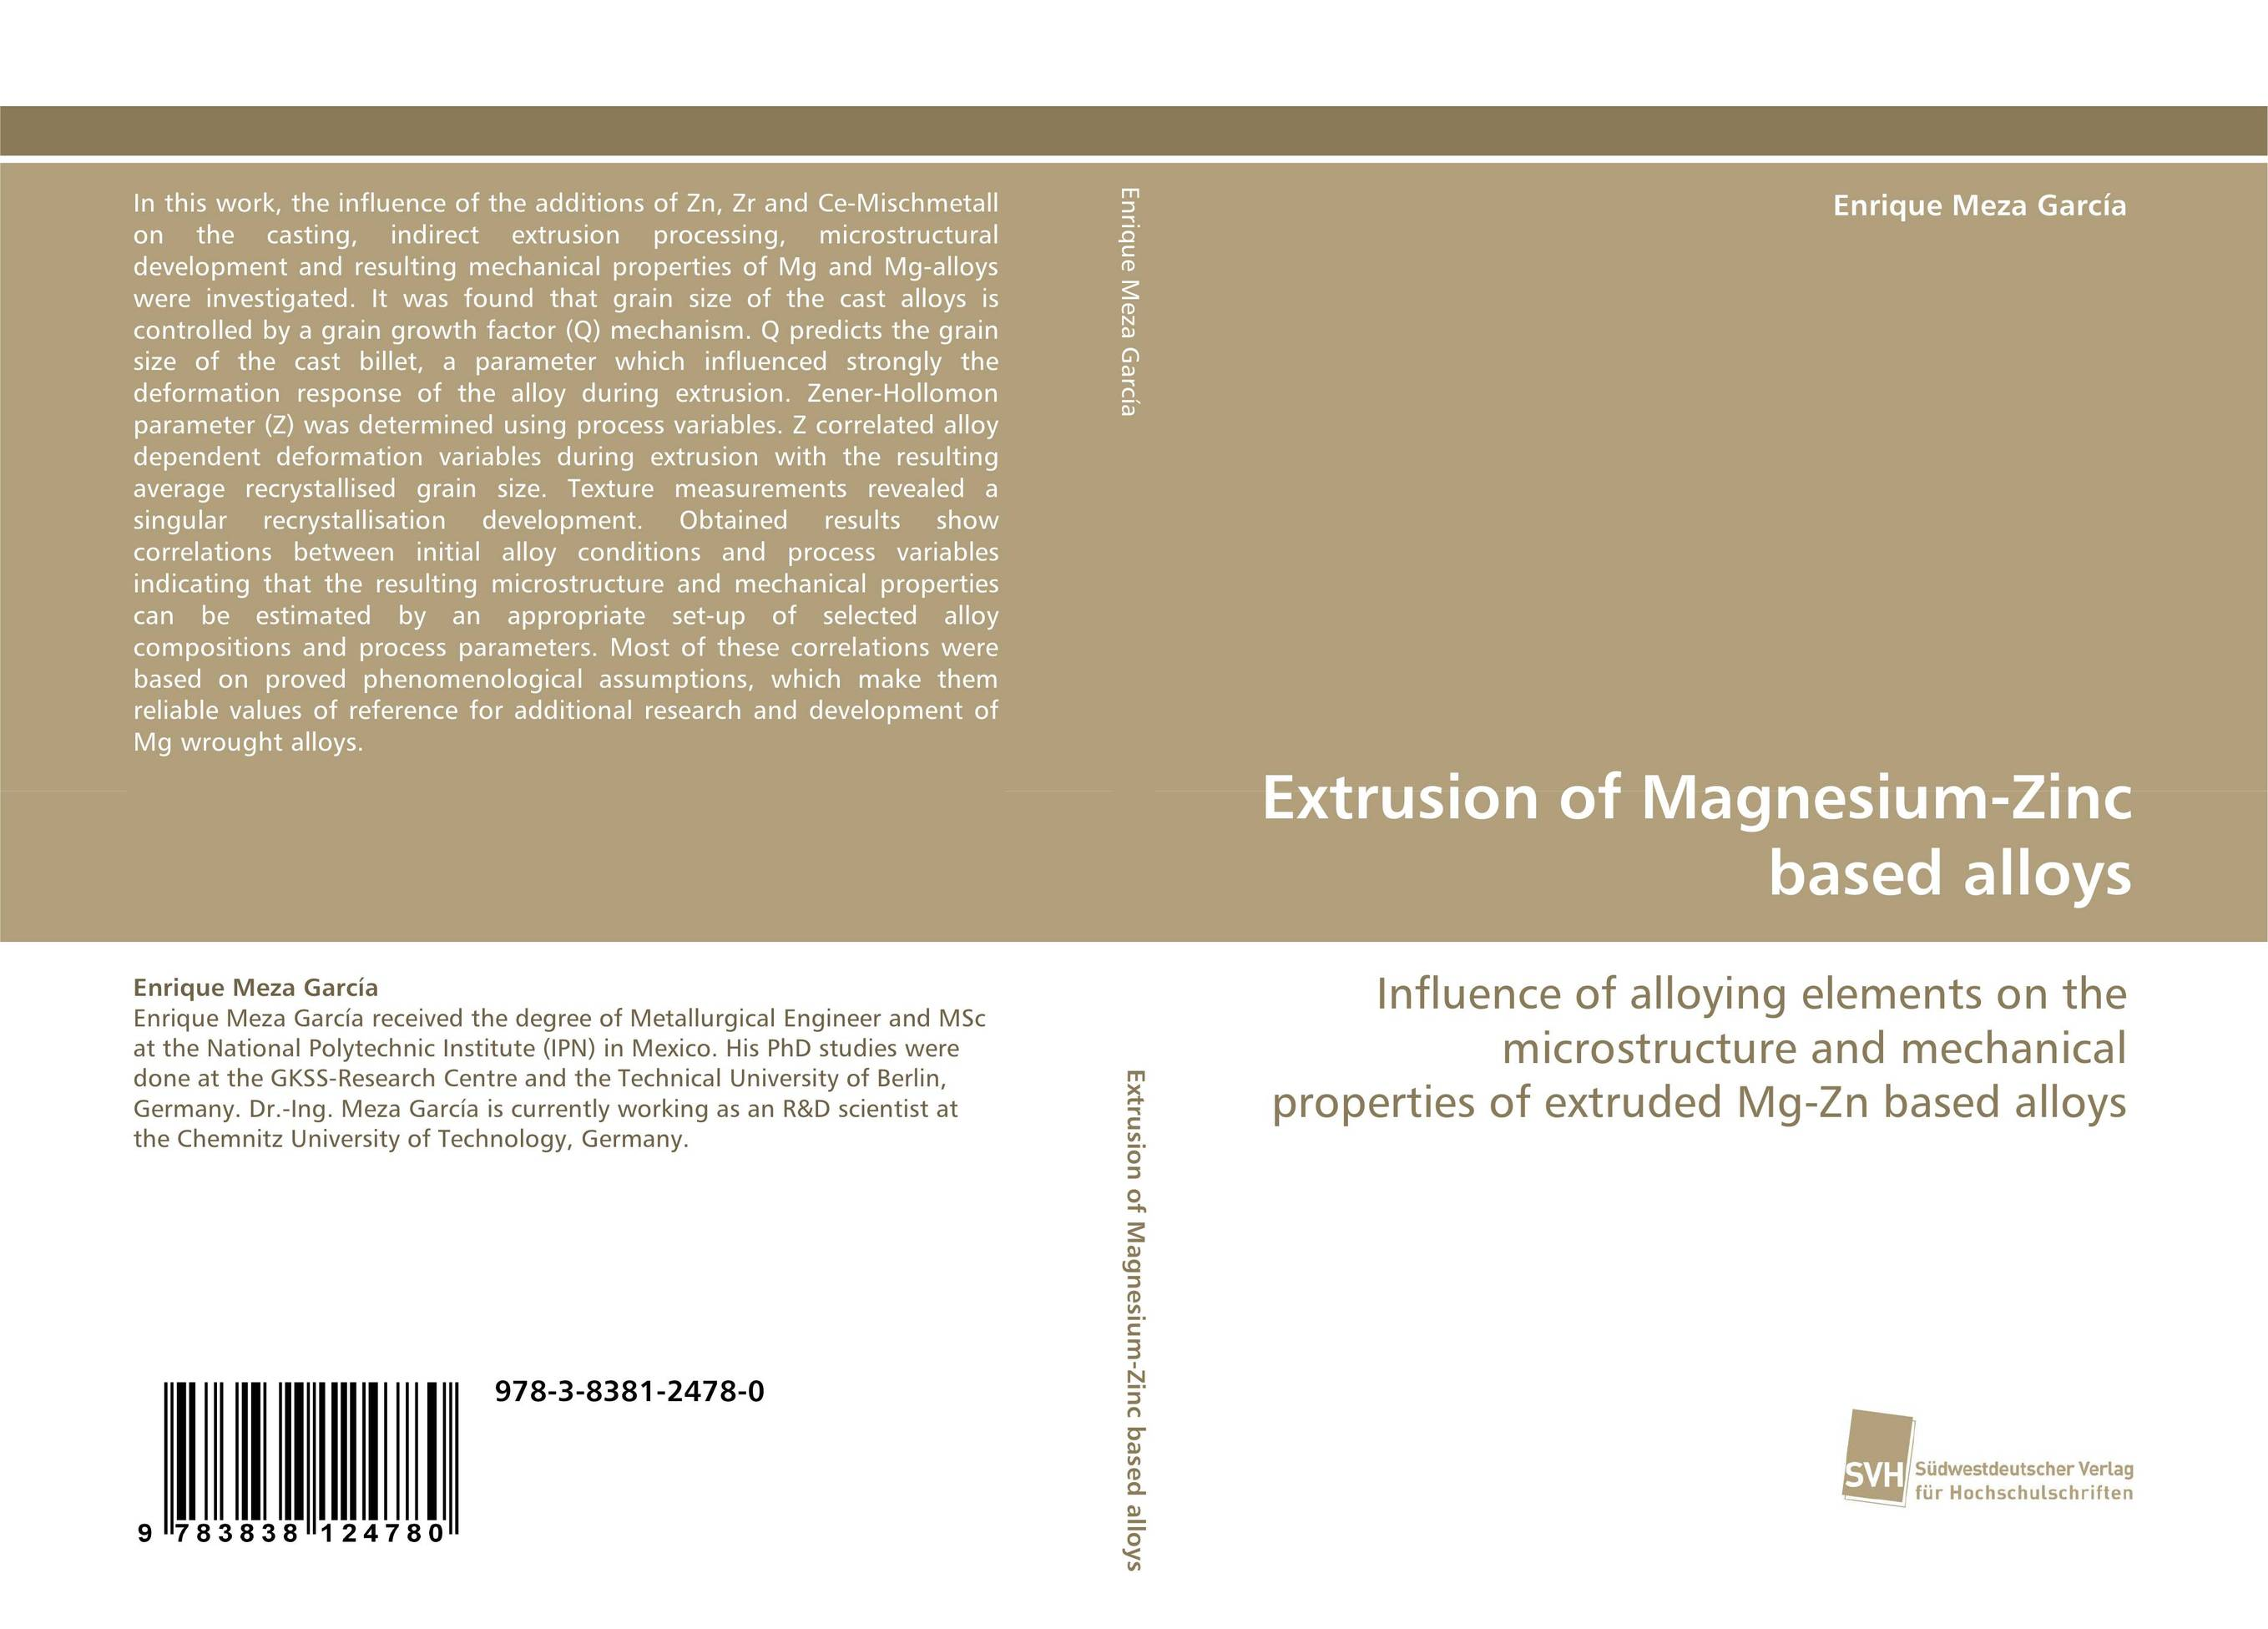 Extrusion of Magnesium-Zinc based alloys